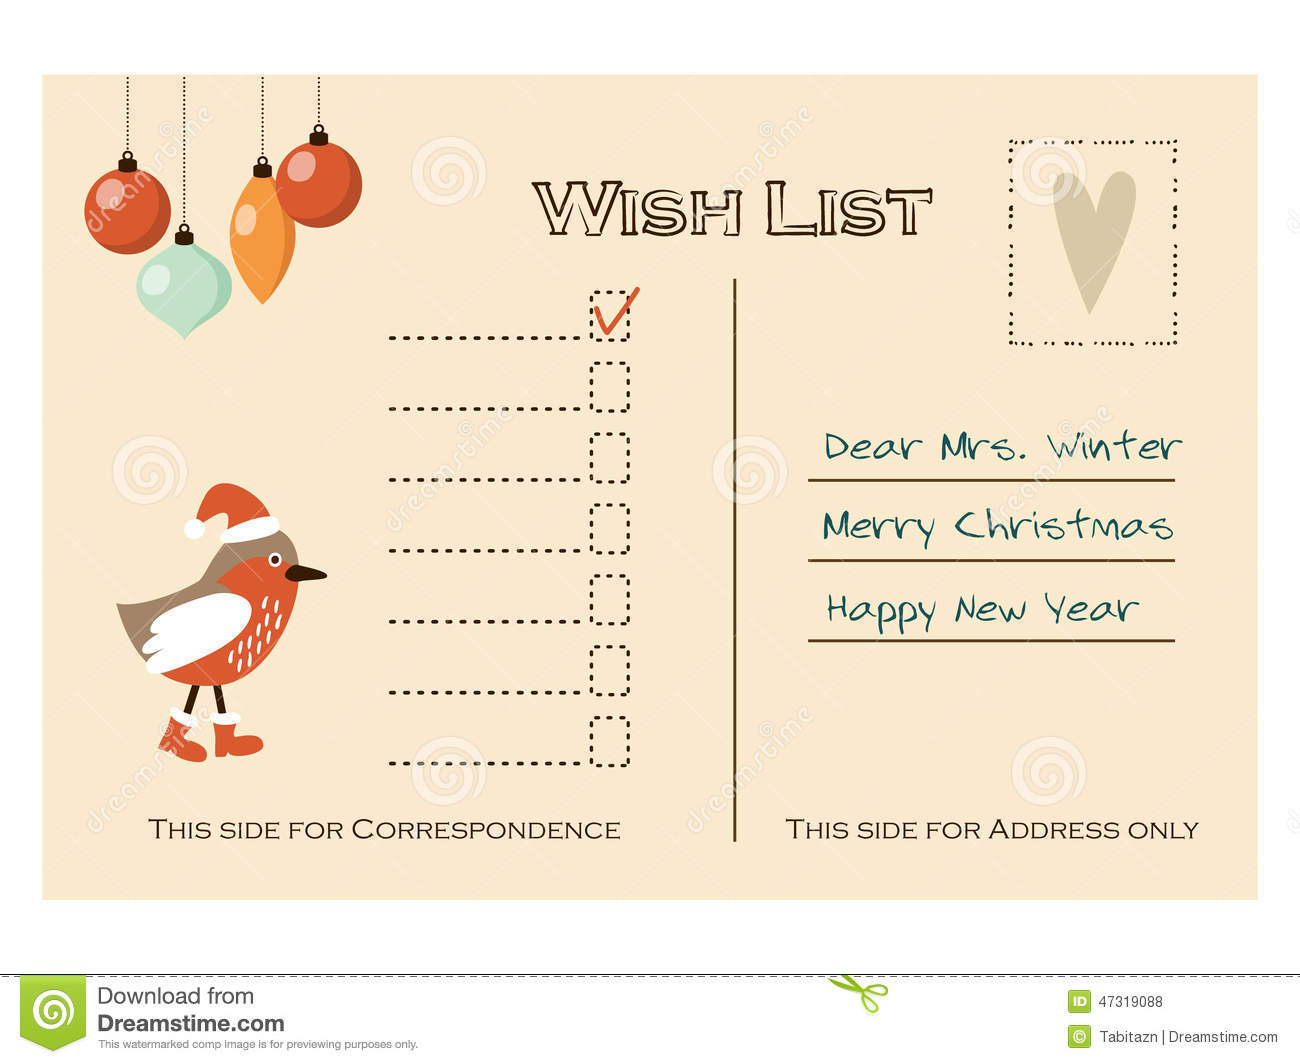 Cute Christmas Card, Wish List With Bird And Baubles, Stock Vector - Image: 47319088